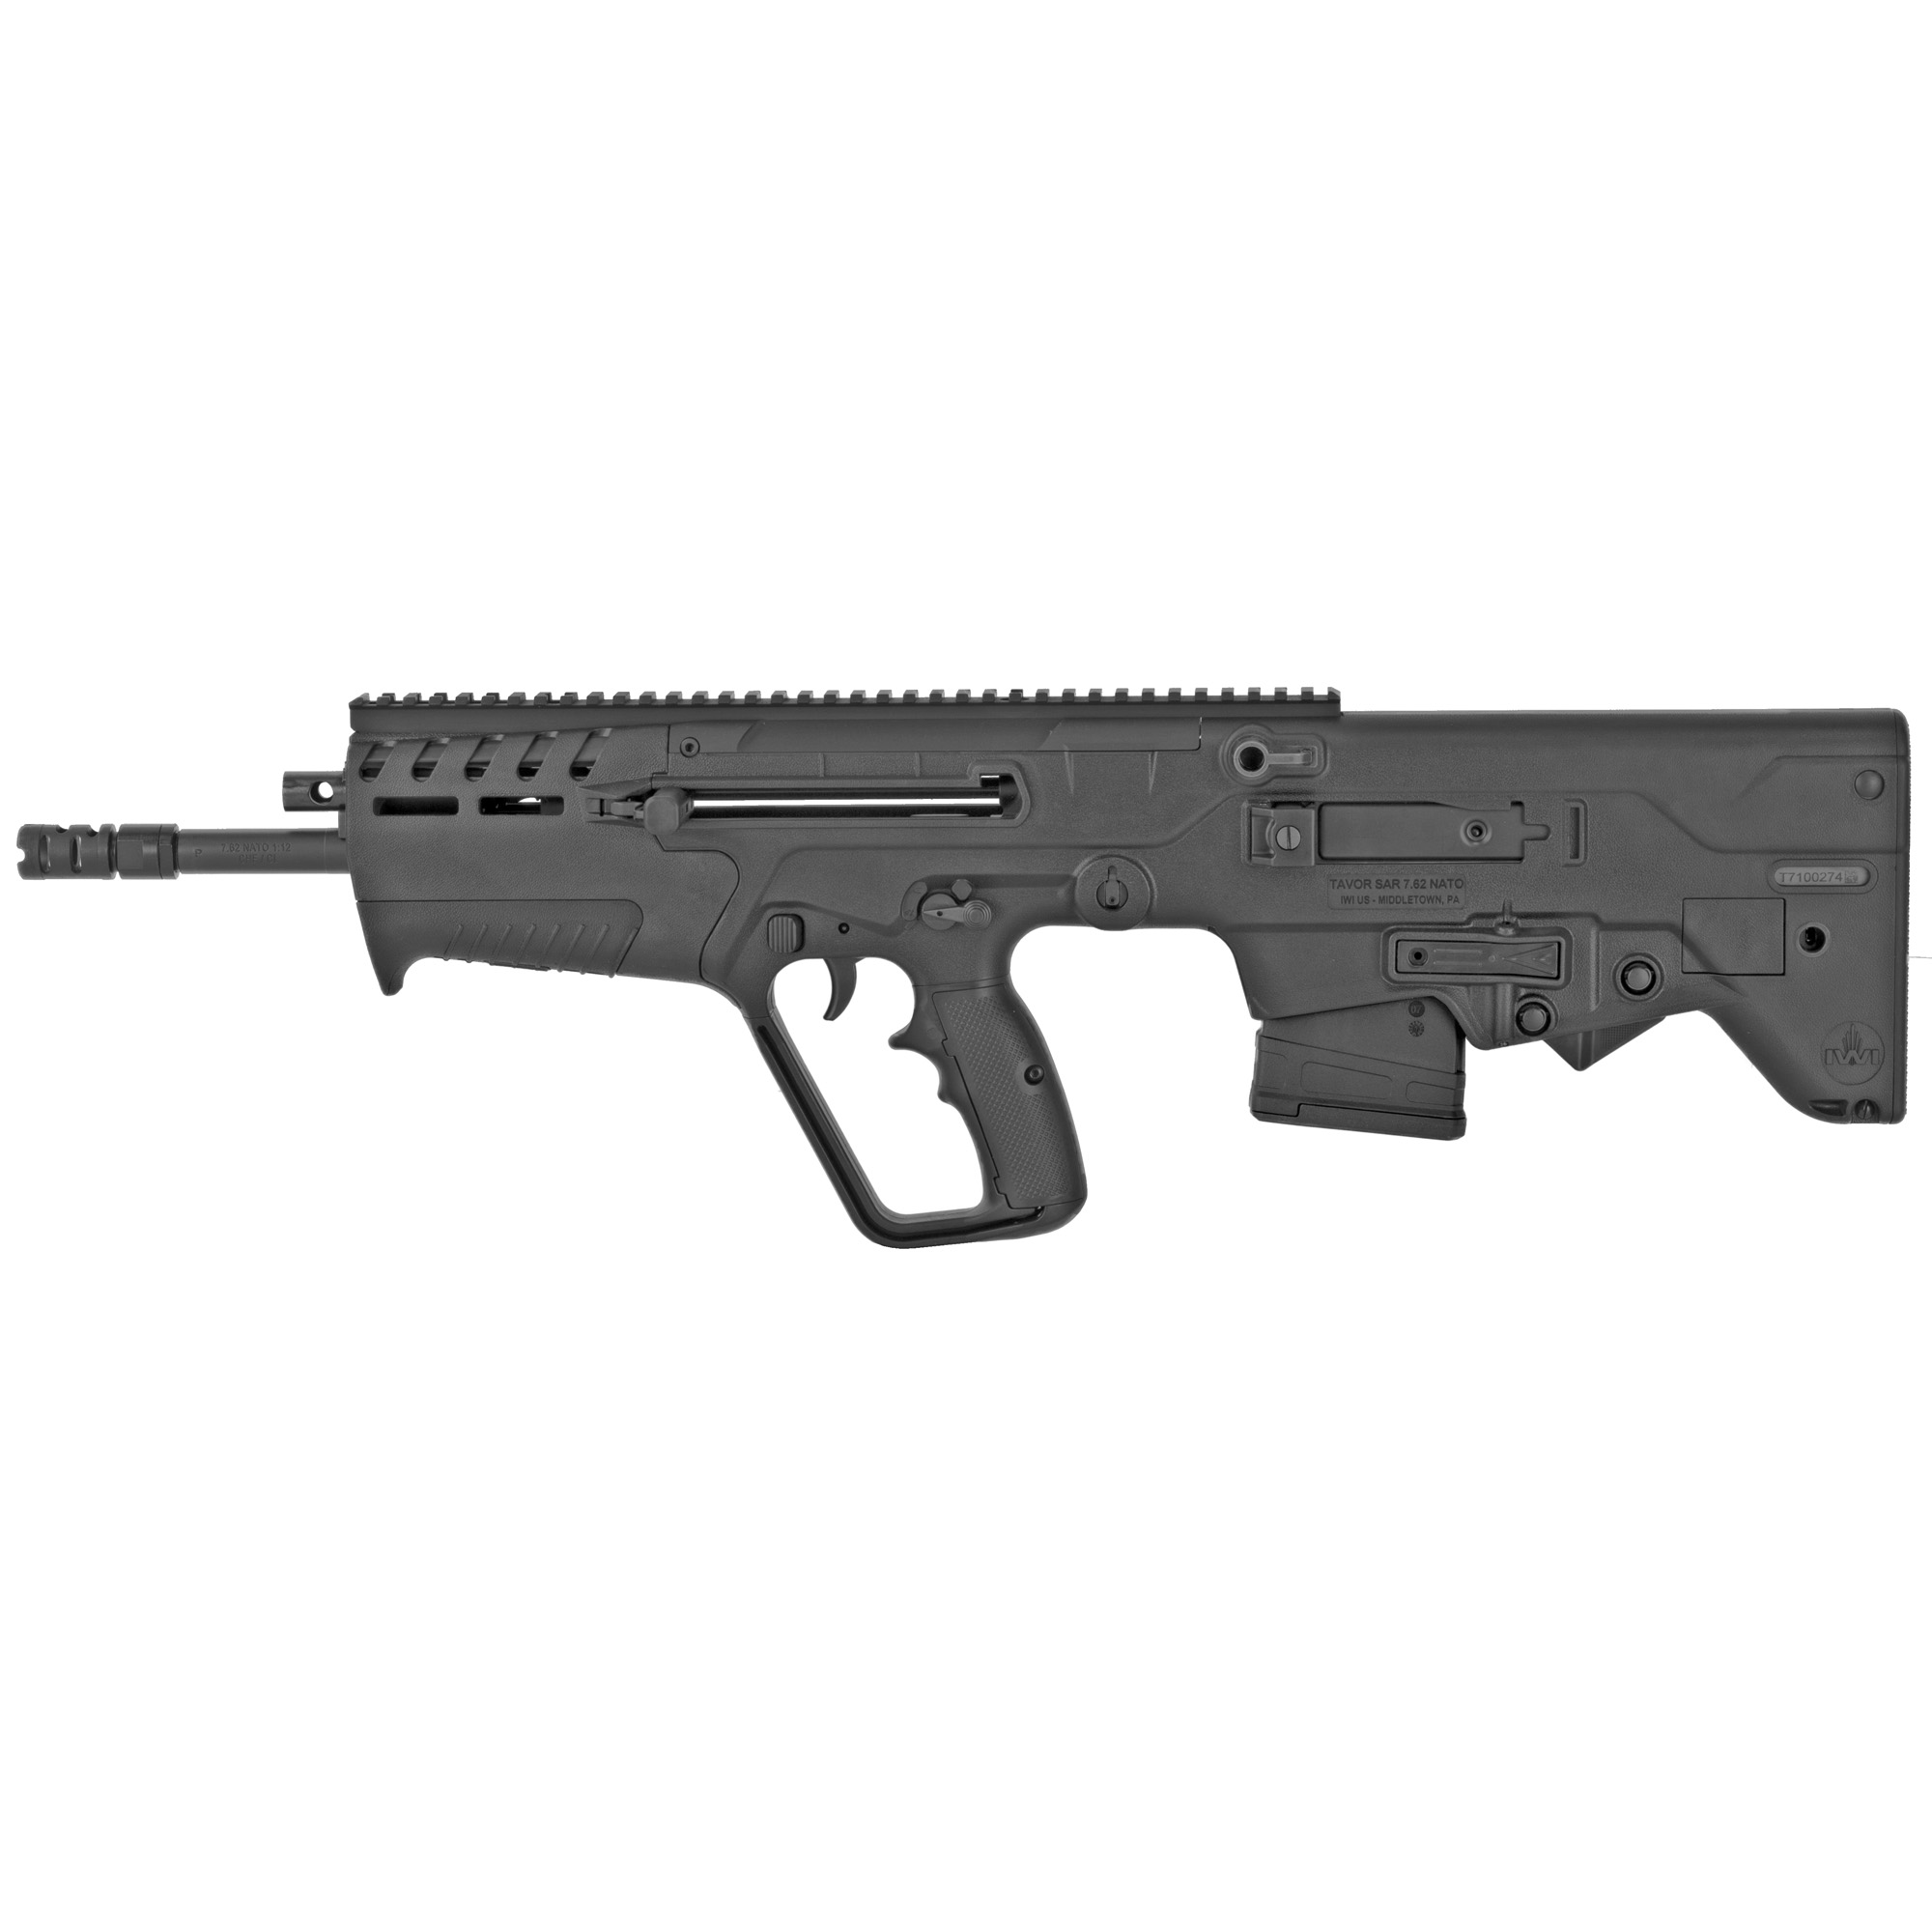 """The Tavor 7 is the next evolutionary step in the Tavor bullpup family. Based on requests from military and civilian customers alike"""" the Tavor 7 is IWI's introduction into the 7.62x51 bullpup rifle offering. The Tavor carries the usual reliability expected of all IWI products with some increased ergonomic features. This includes the ability to lock the charging handle without the use of the bolt catch. It also maintains the M4 type ambidextrous magazine release system and 45 degree ambidextrous safety."""